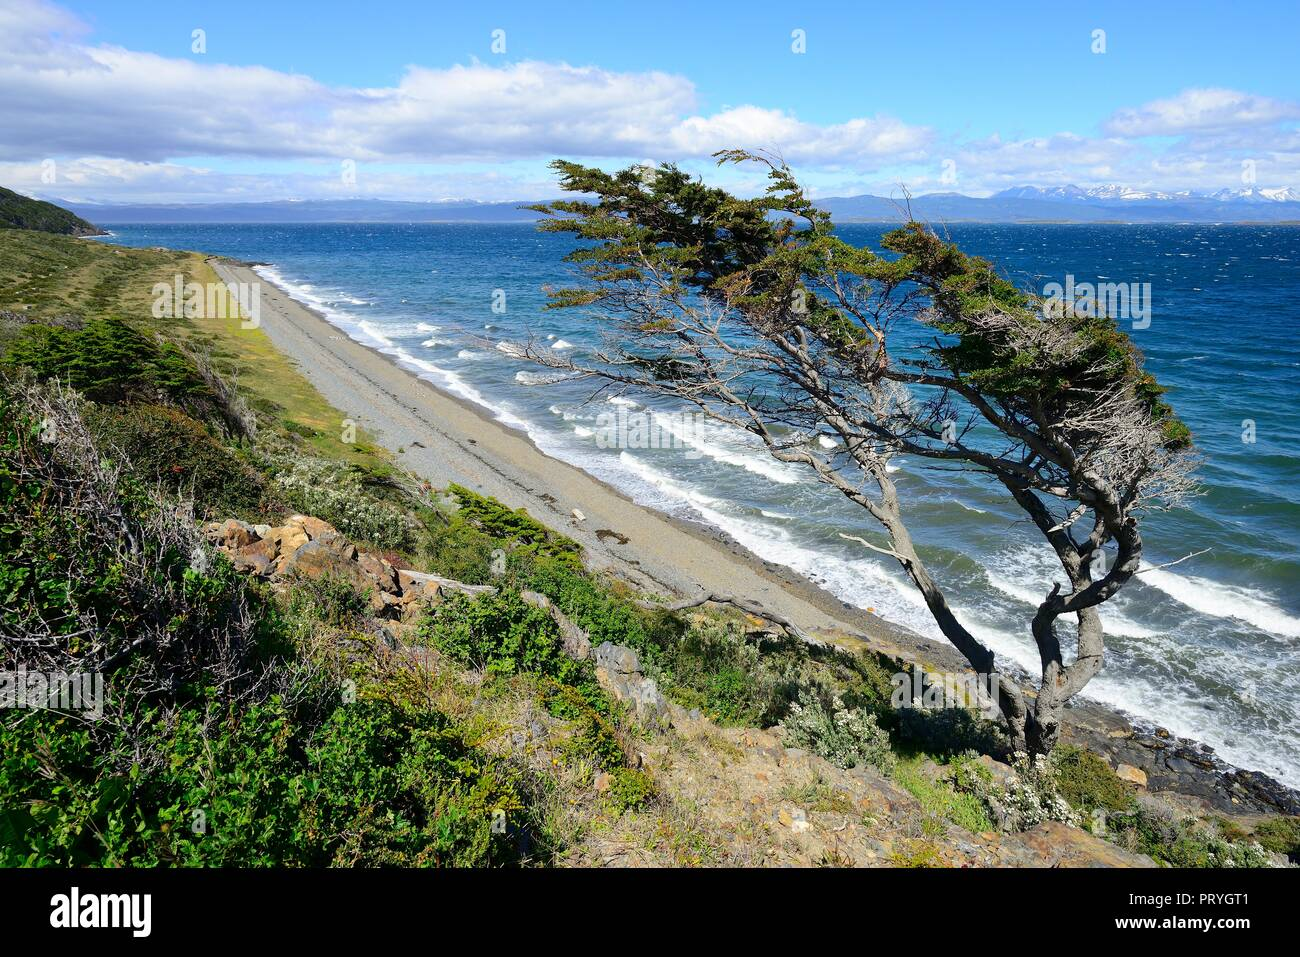 Tousled tree on the Beagle Canal, Ushuaia, Tierra del Fuego Province, Tierra del Fuego, Argentina - Stock Image